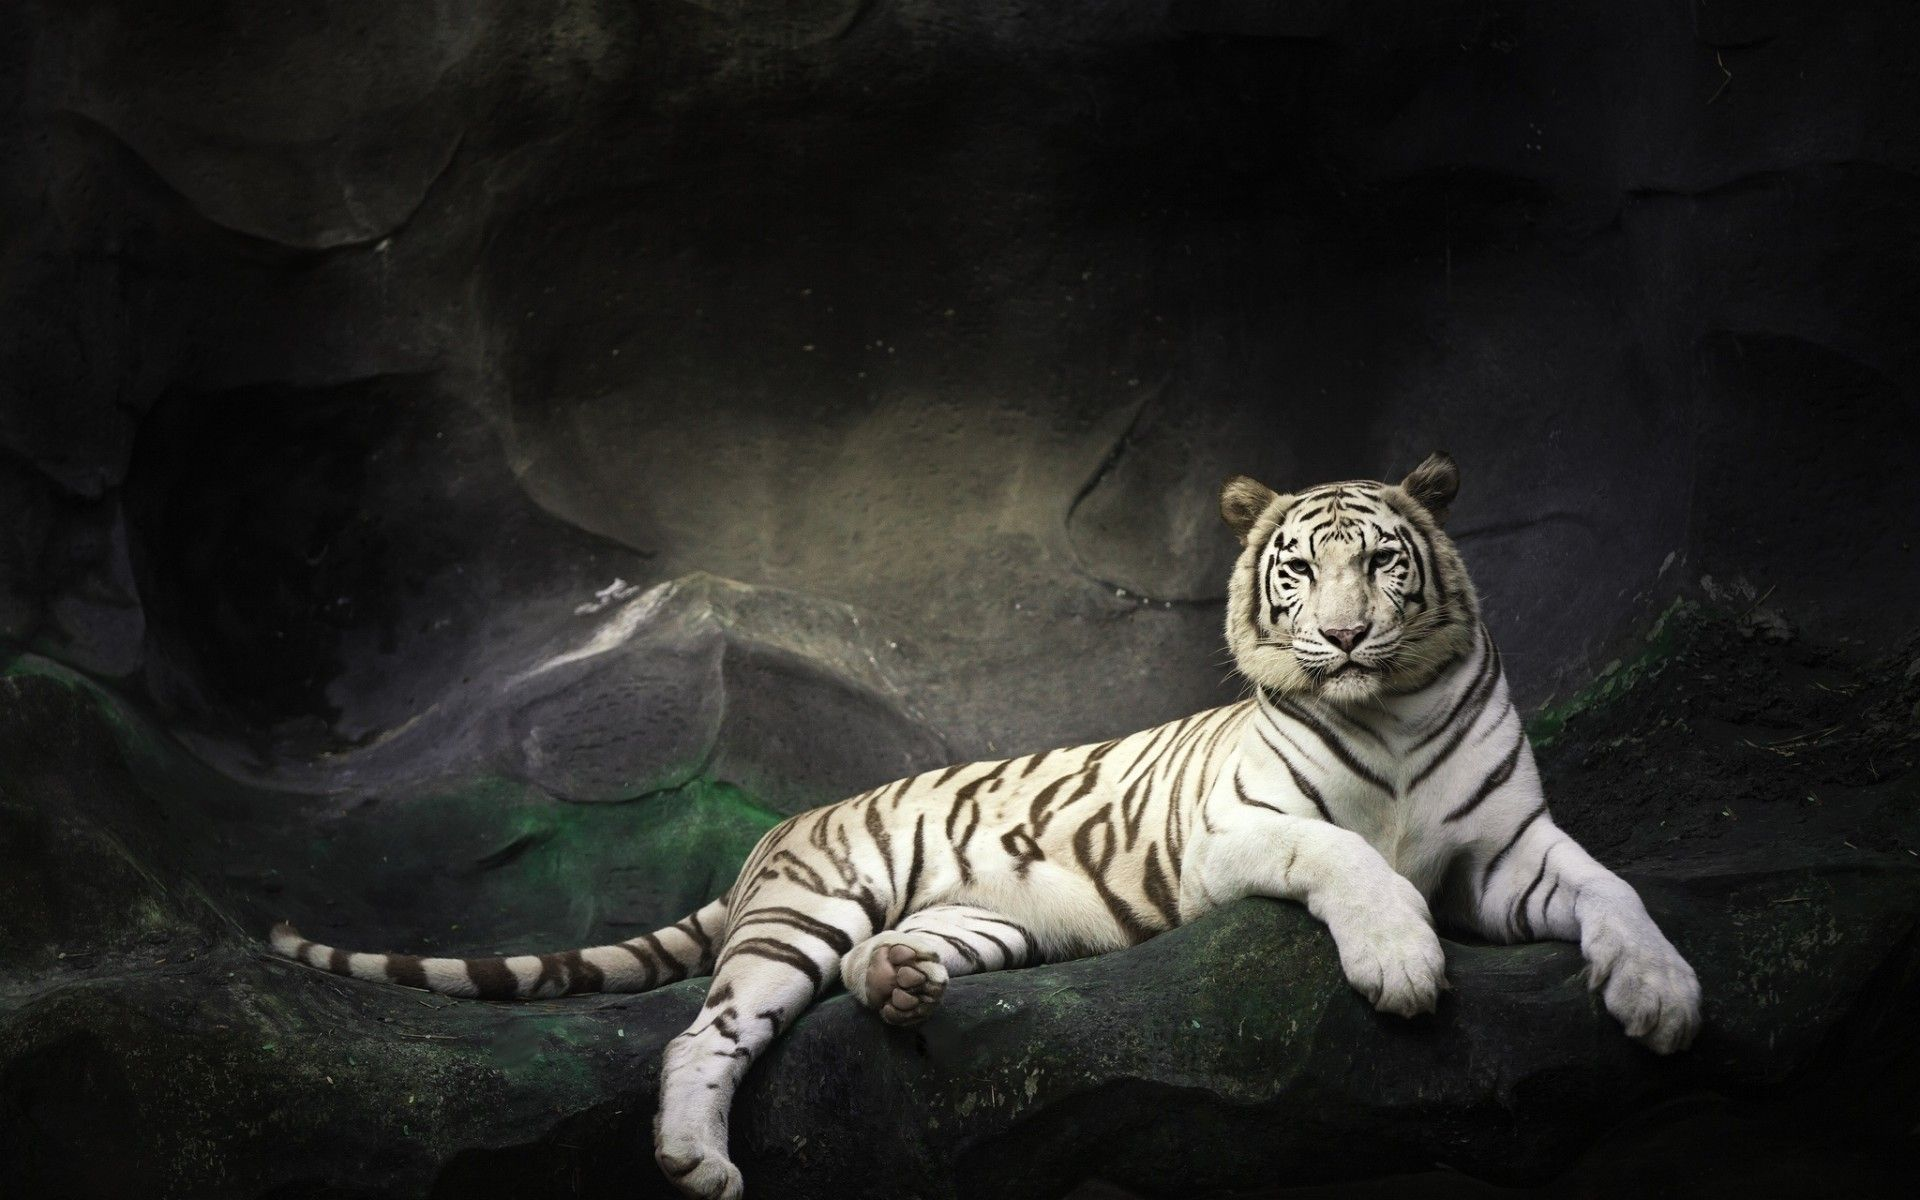 Free download Hd White Tiger Wallpaper 1920x1200 for your